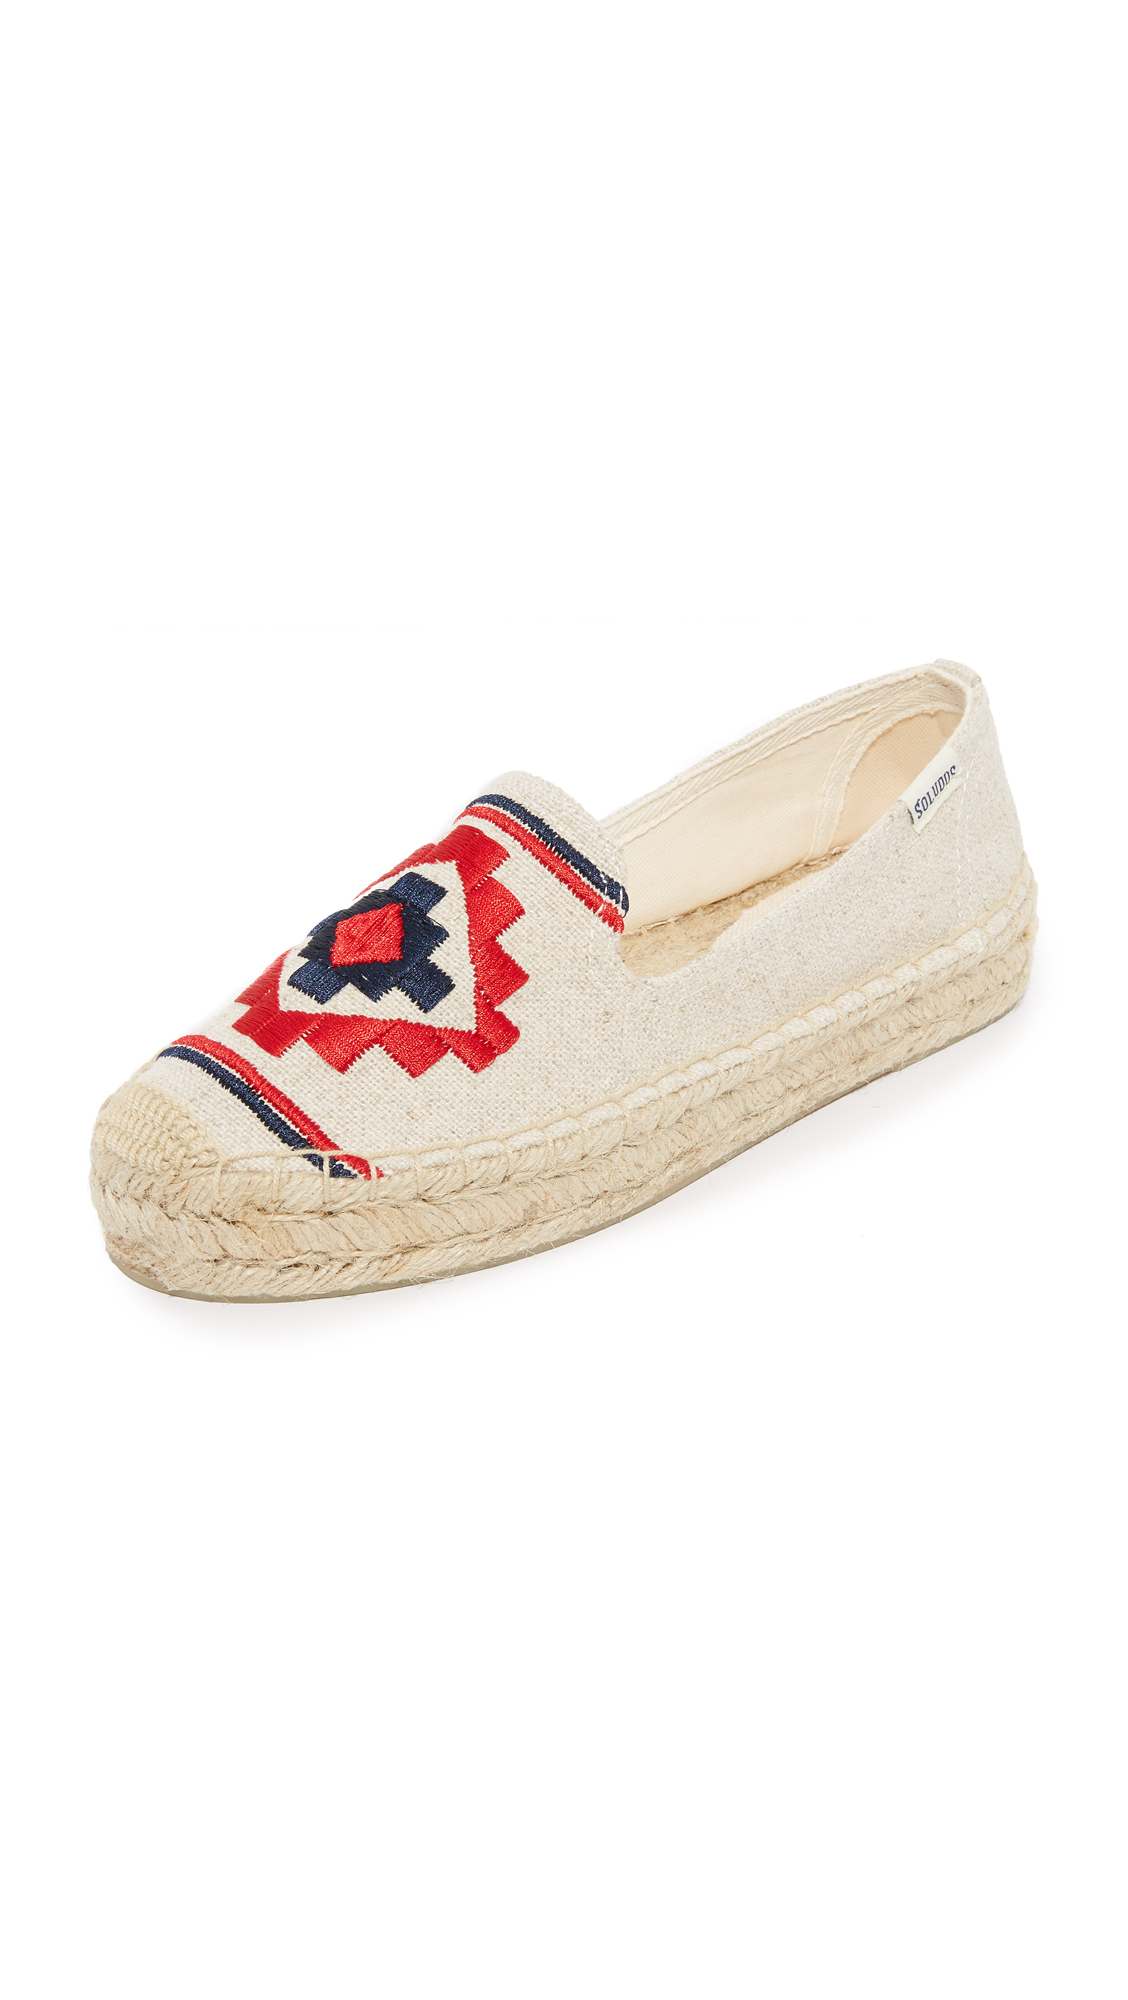 soludos female soludos embroidered platform smoking slippers sand